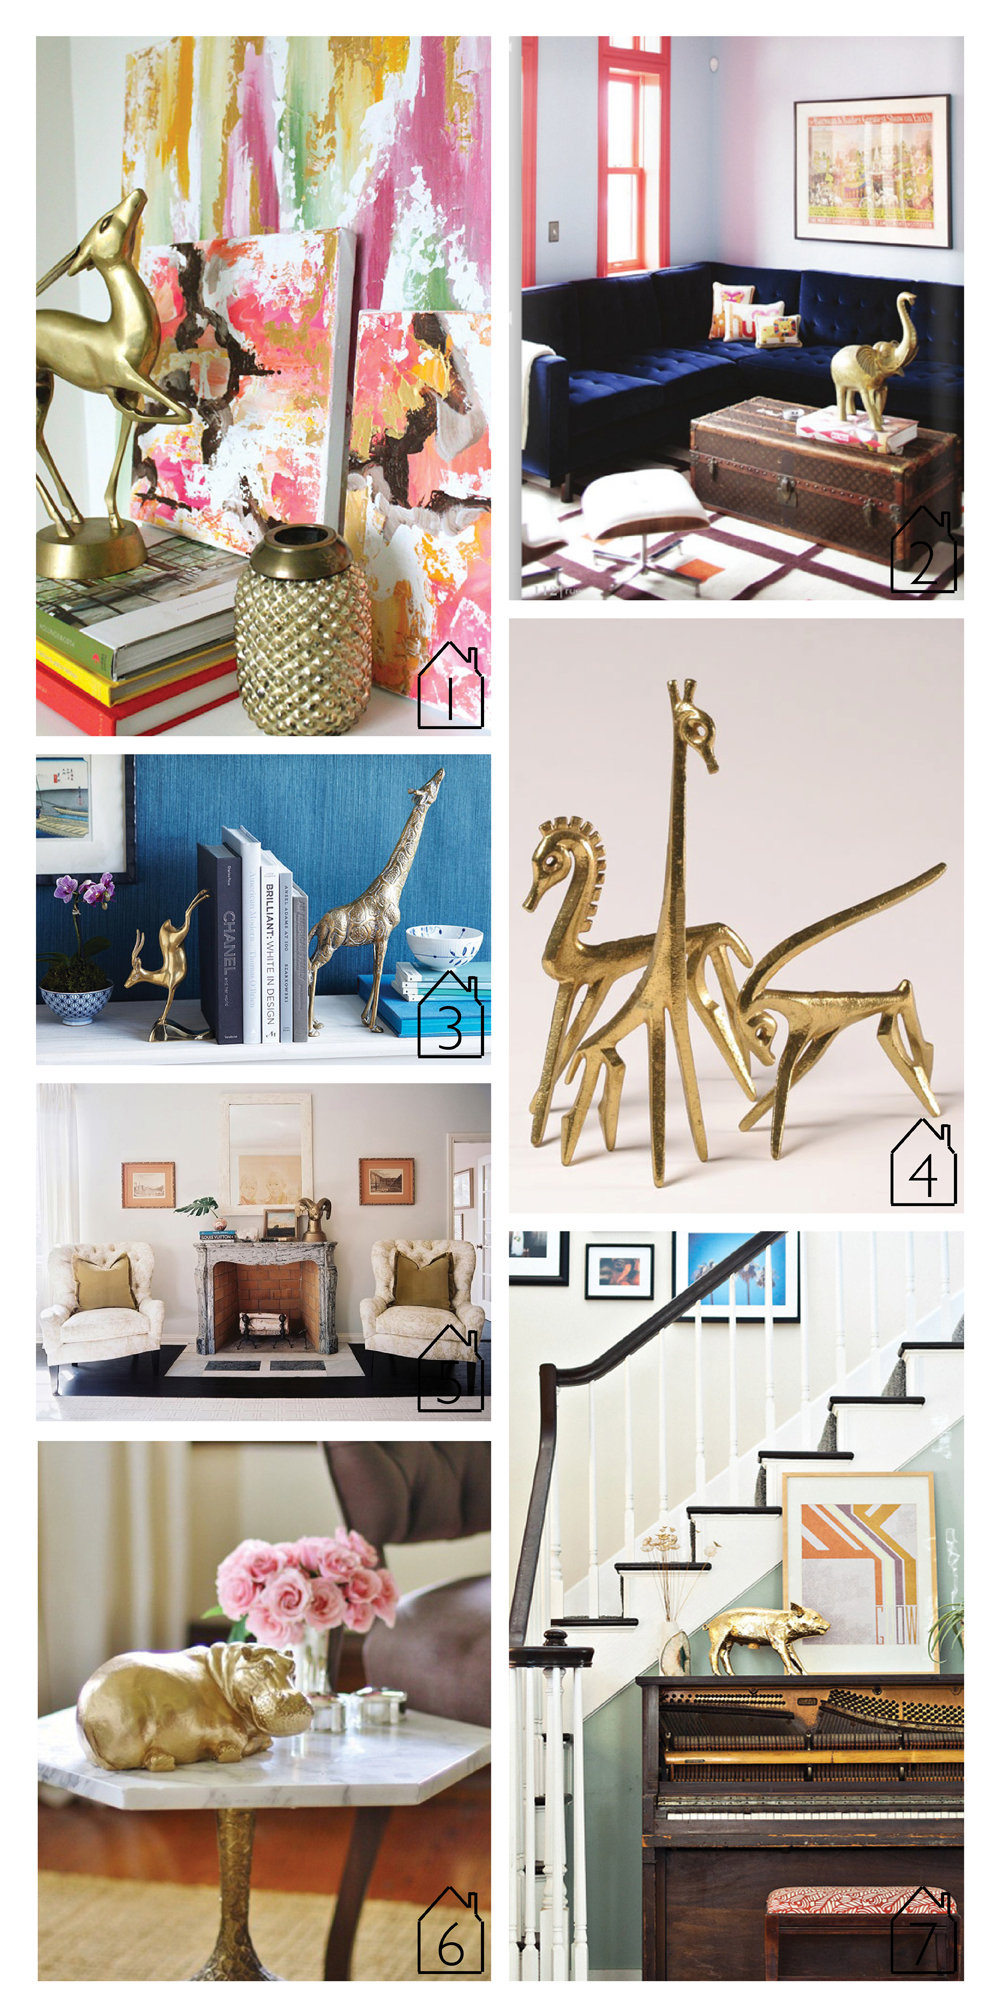 1. antelope via Cozemia  2. elephant via Desire to Decorate  3. deer and giraffe via One Kings Lane  4. Frederick Weinberg's modernist brass animal figurines via Ripley Auctions  5. rams head via Lonny  6. Janet, the hippo via High Street Market  7. home of Chelsea and Forrest Kline via Design Sponge